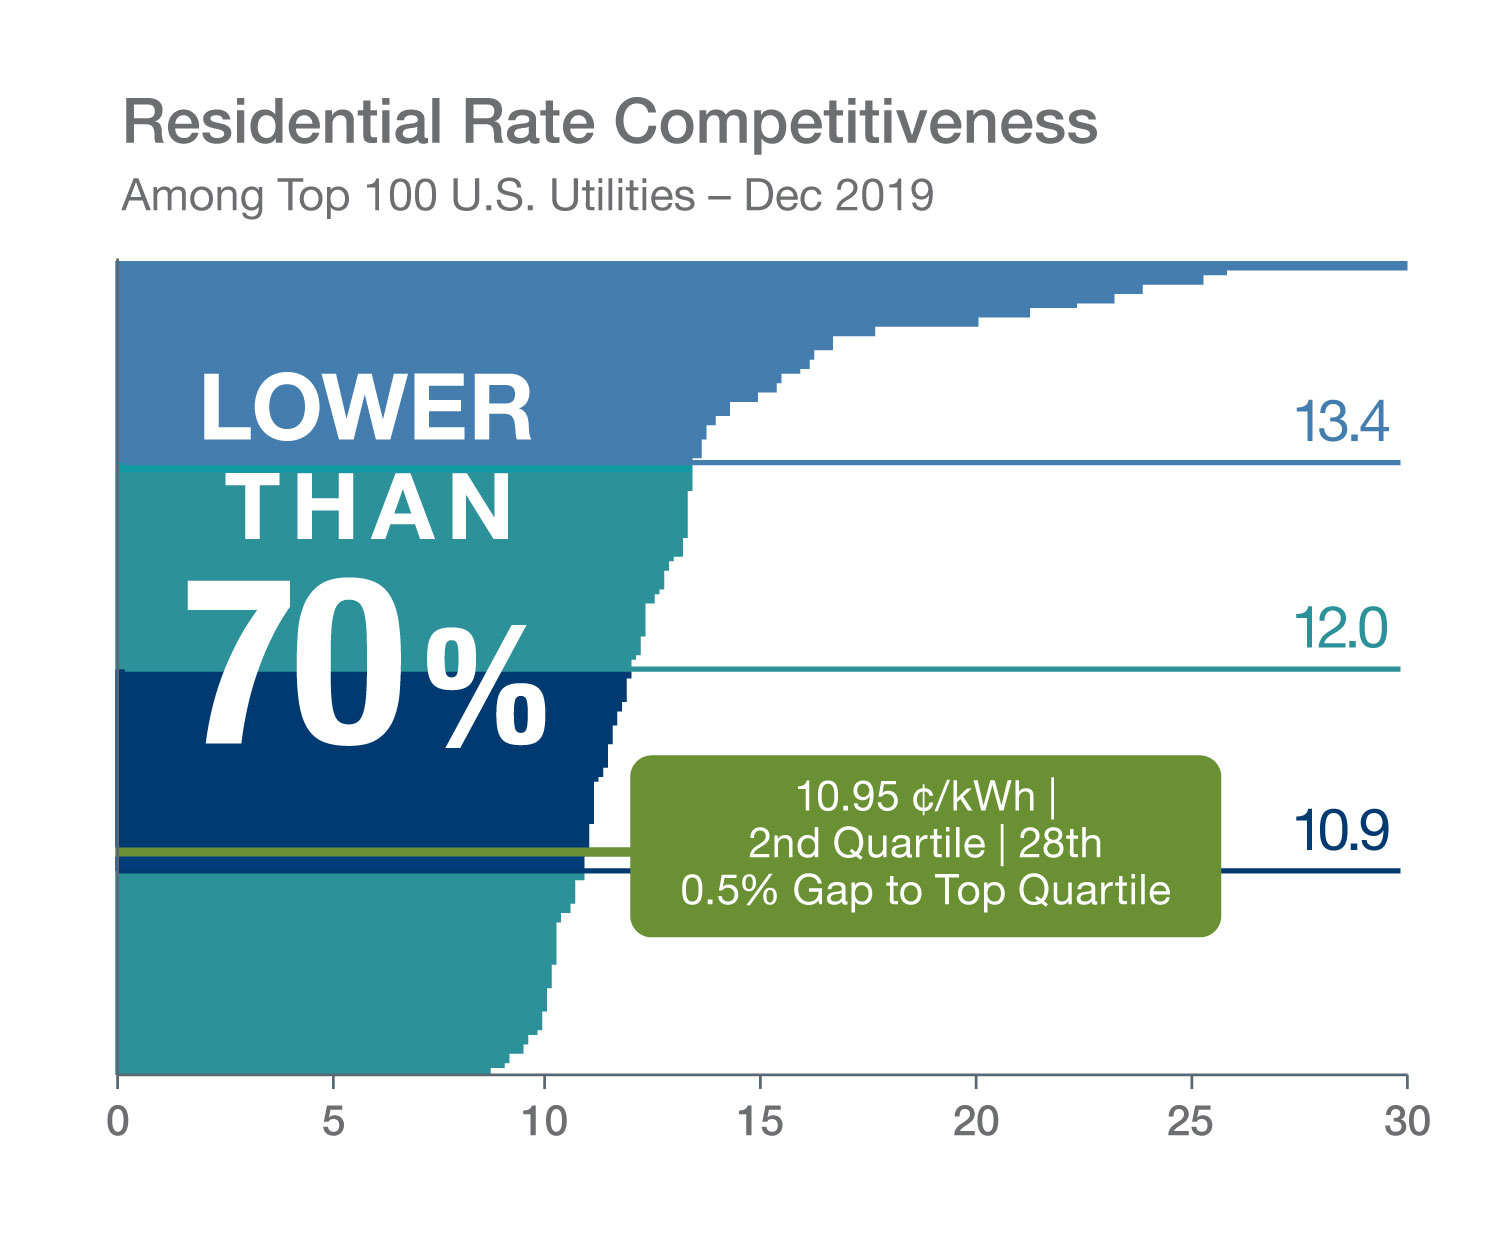 Residential Rate Competitiveness Infographic